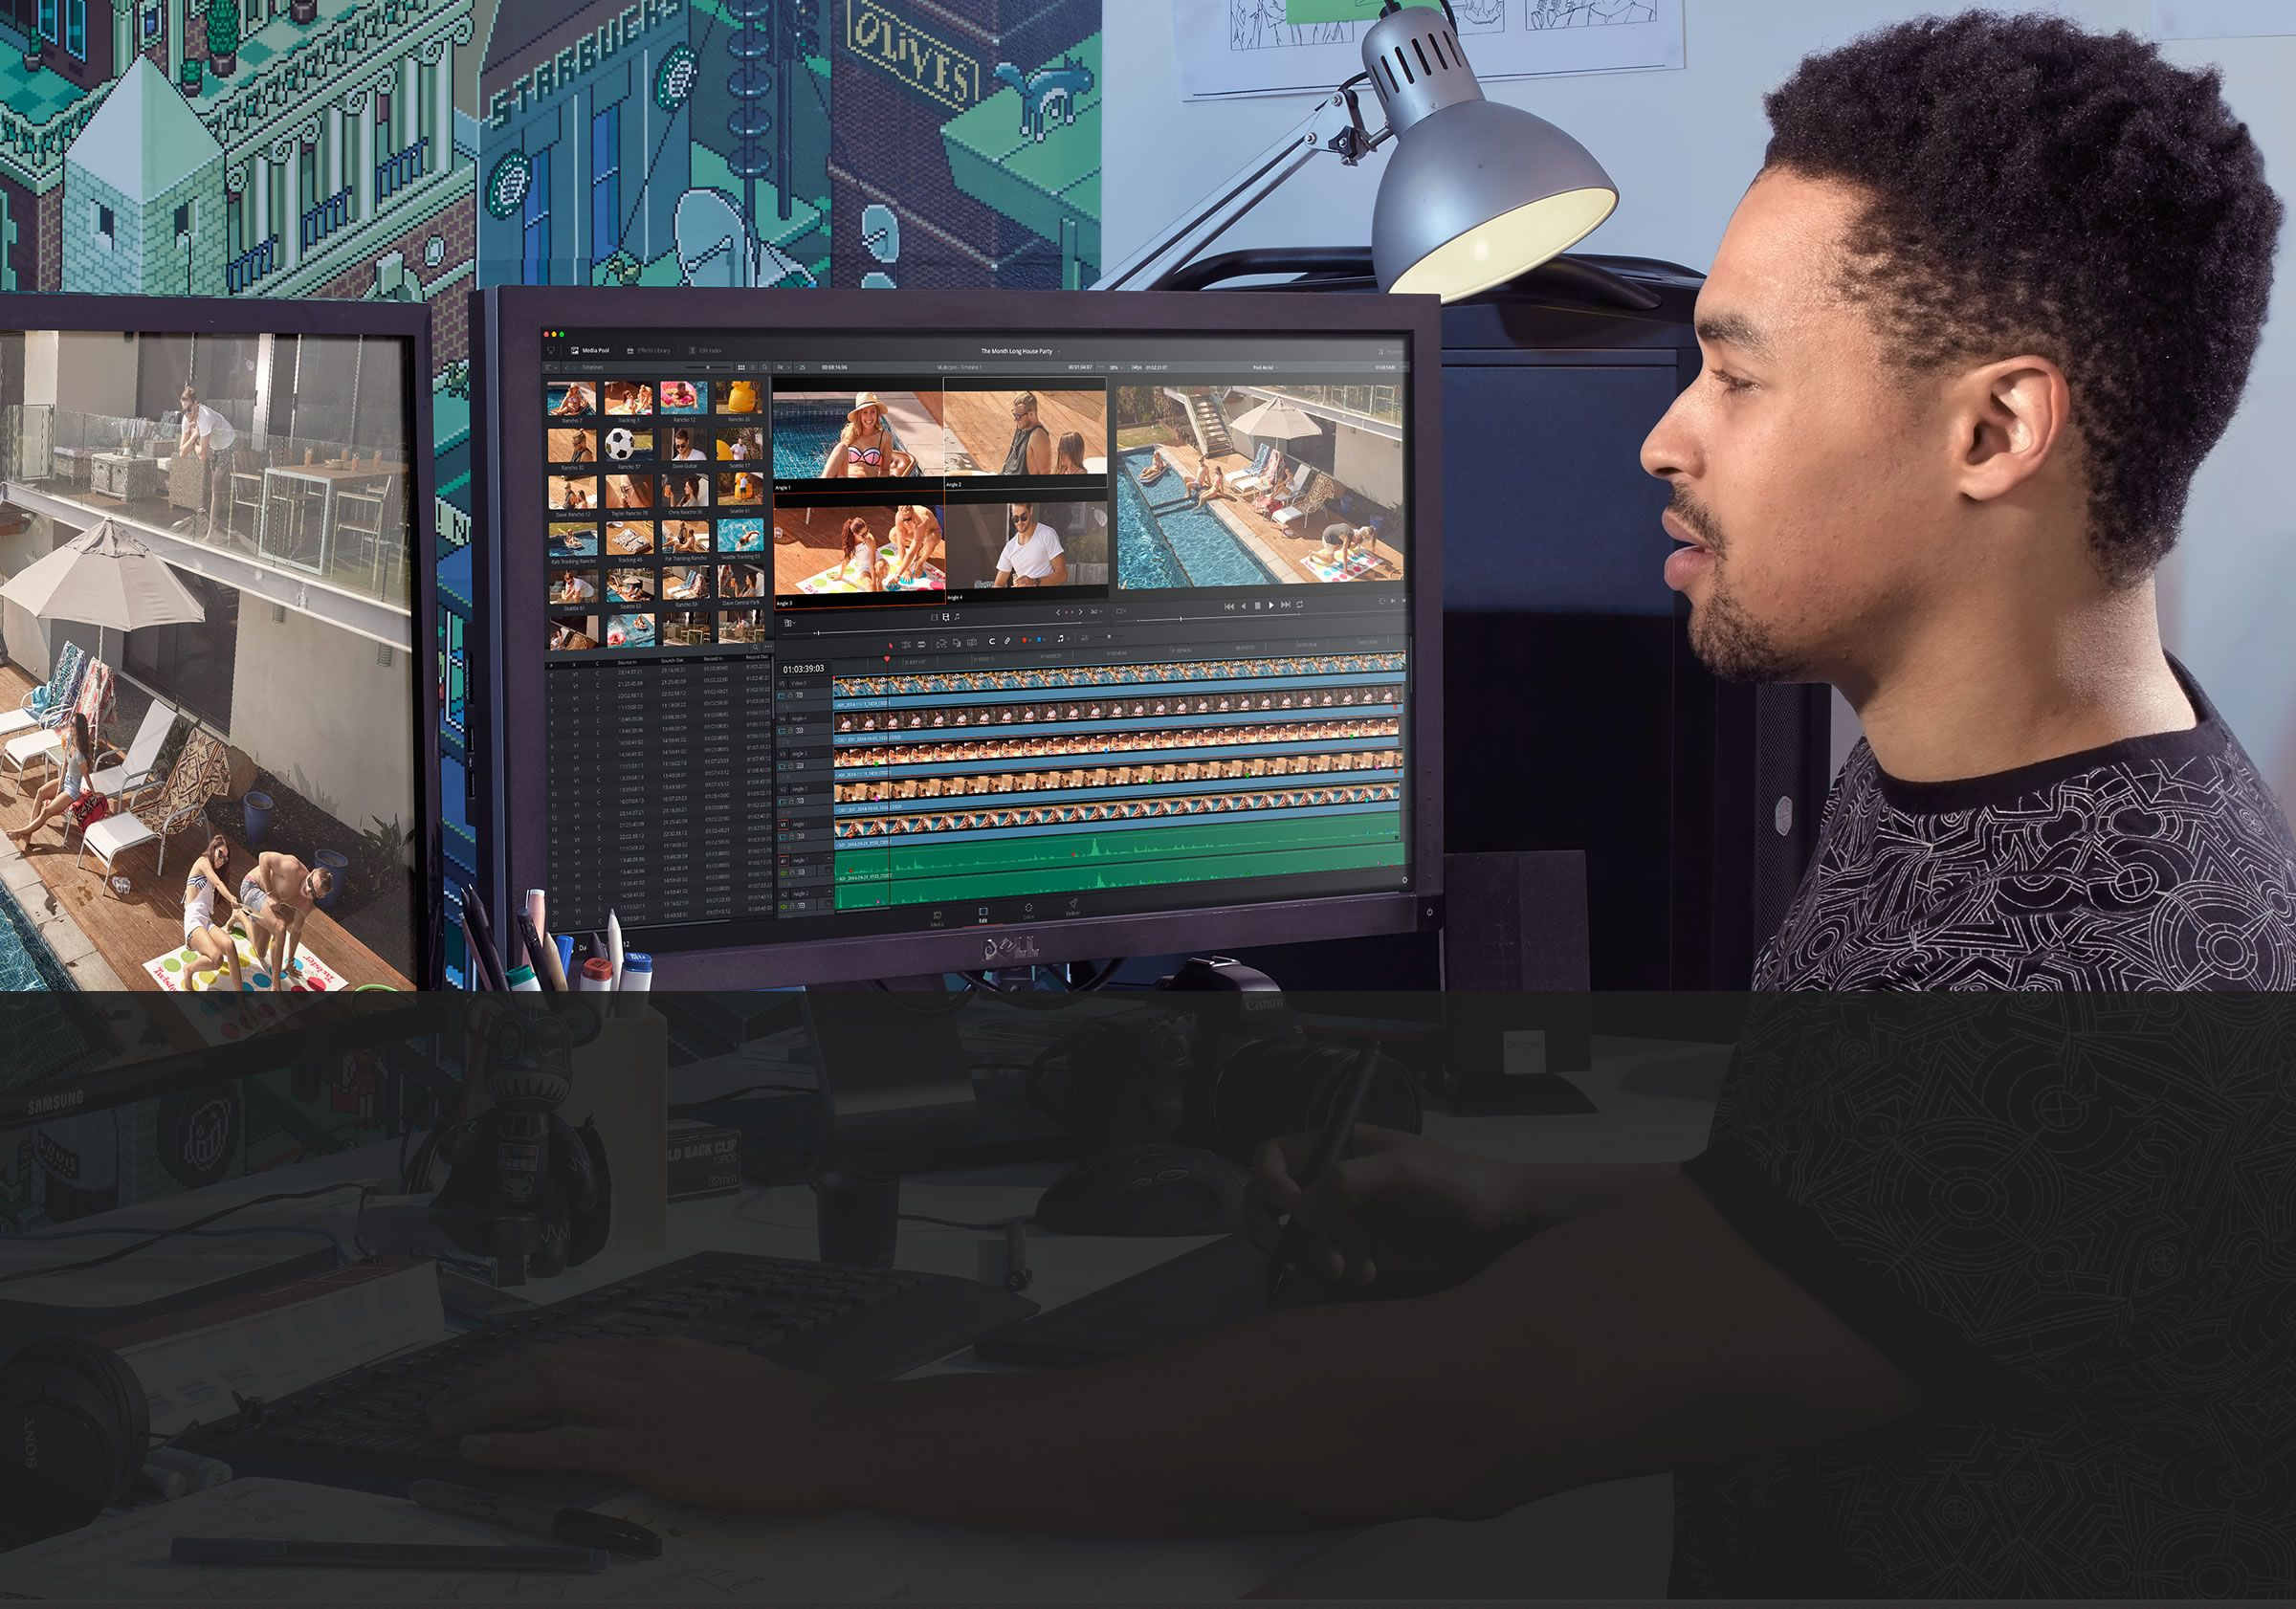 Blackmagic Design Davinci Resolve 12 Workflow Blackmagic Design Davinci Resolve 12 Workflow